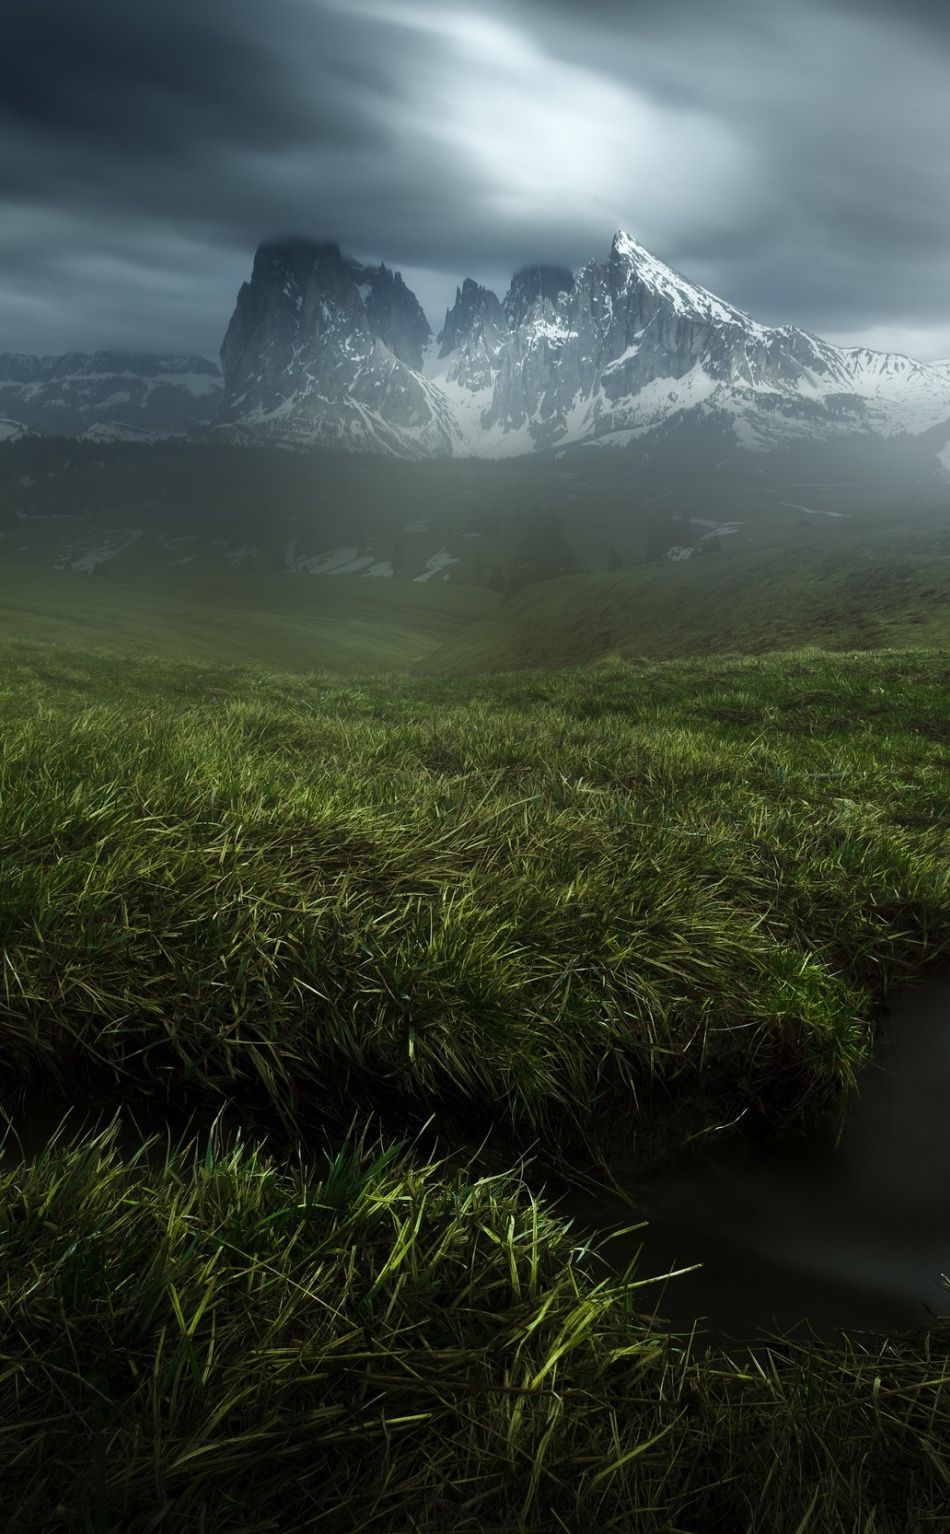 Grass Small Stream Landscape Mountains Wallpaper Beautiful Places Nature Nature Photography Cool Landscapes